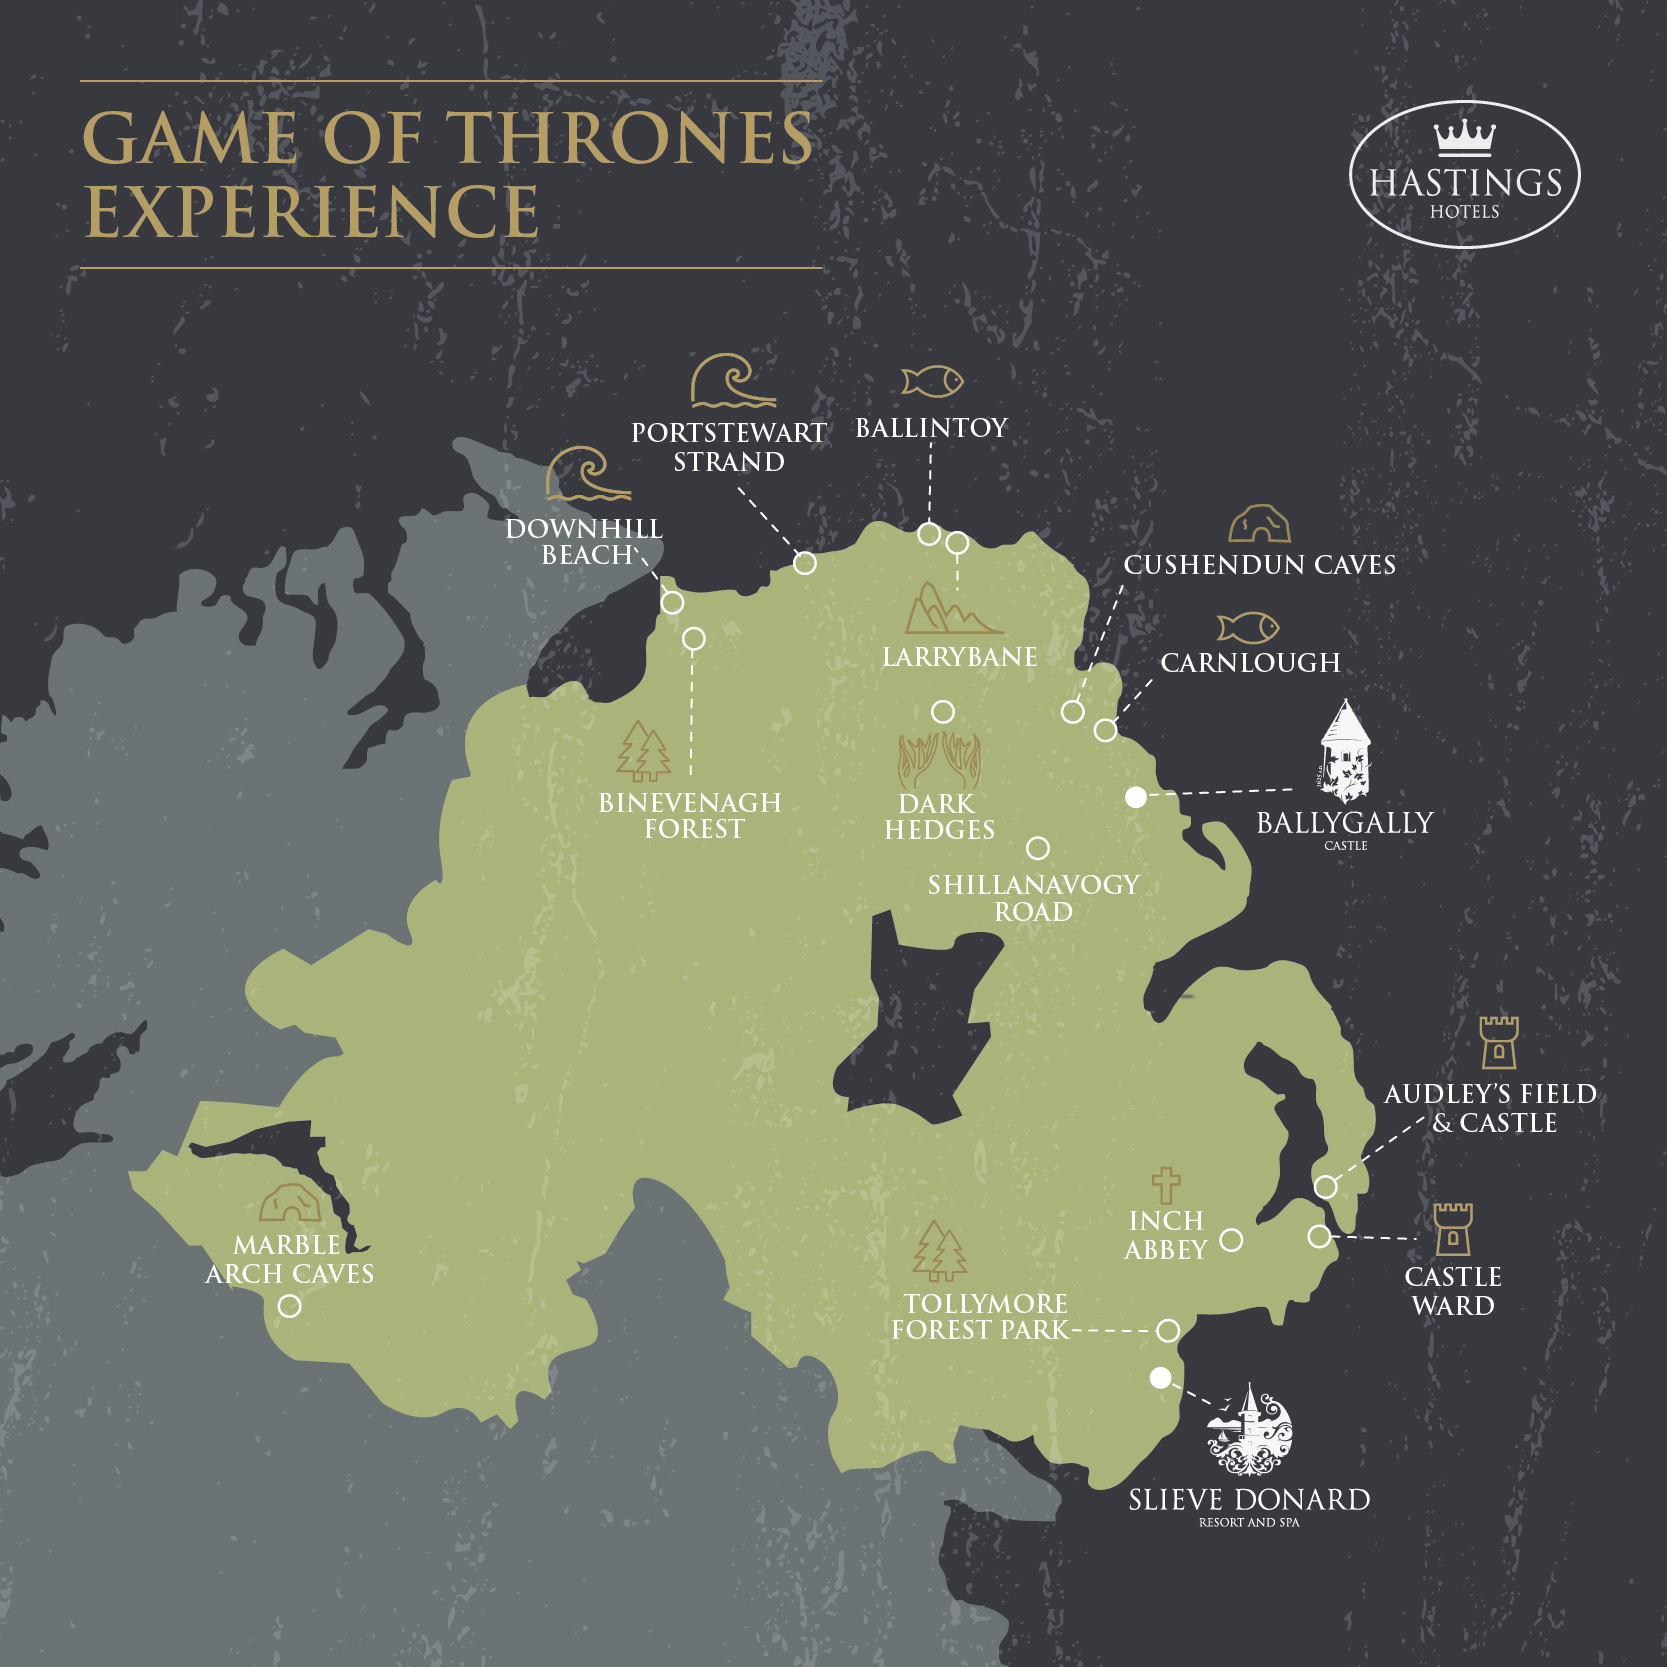 Game of Thrones Locations | Slieve Donard | Co. Down ...